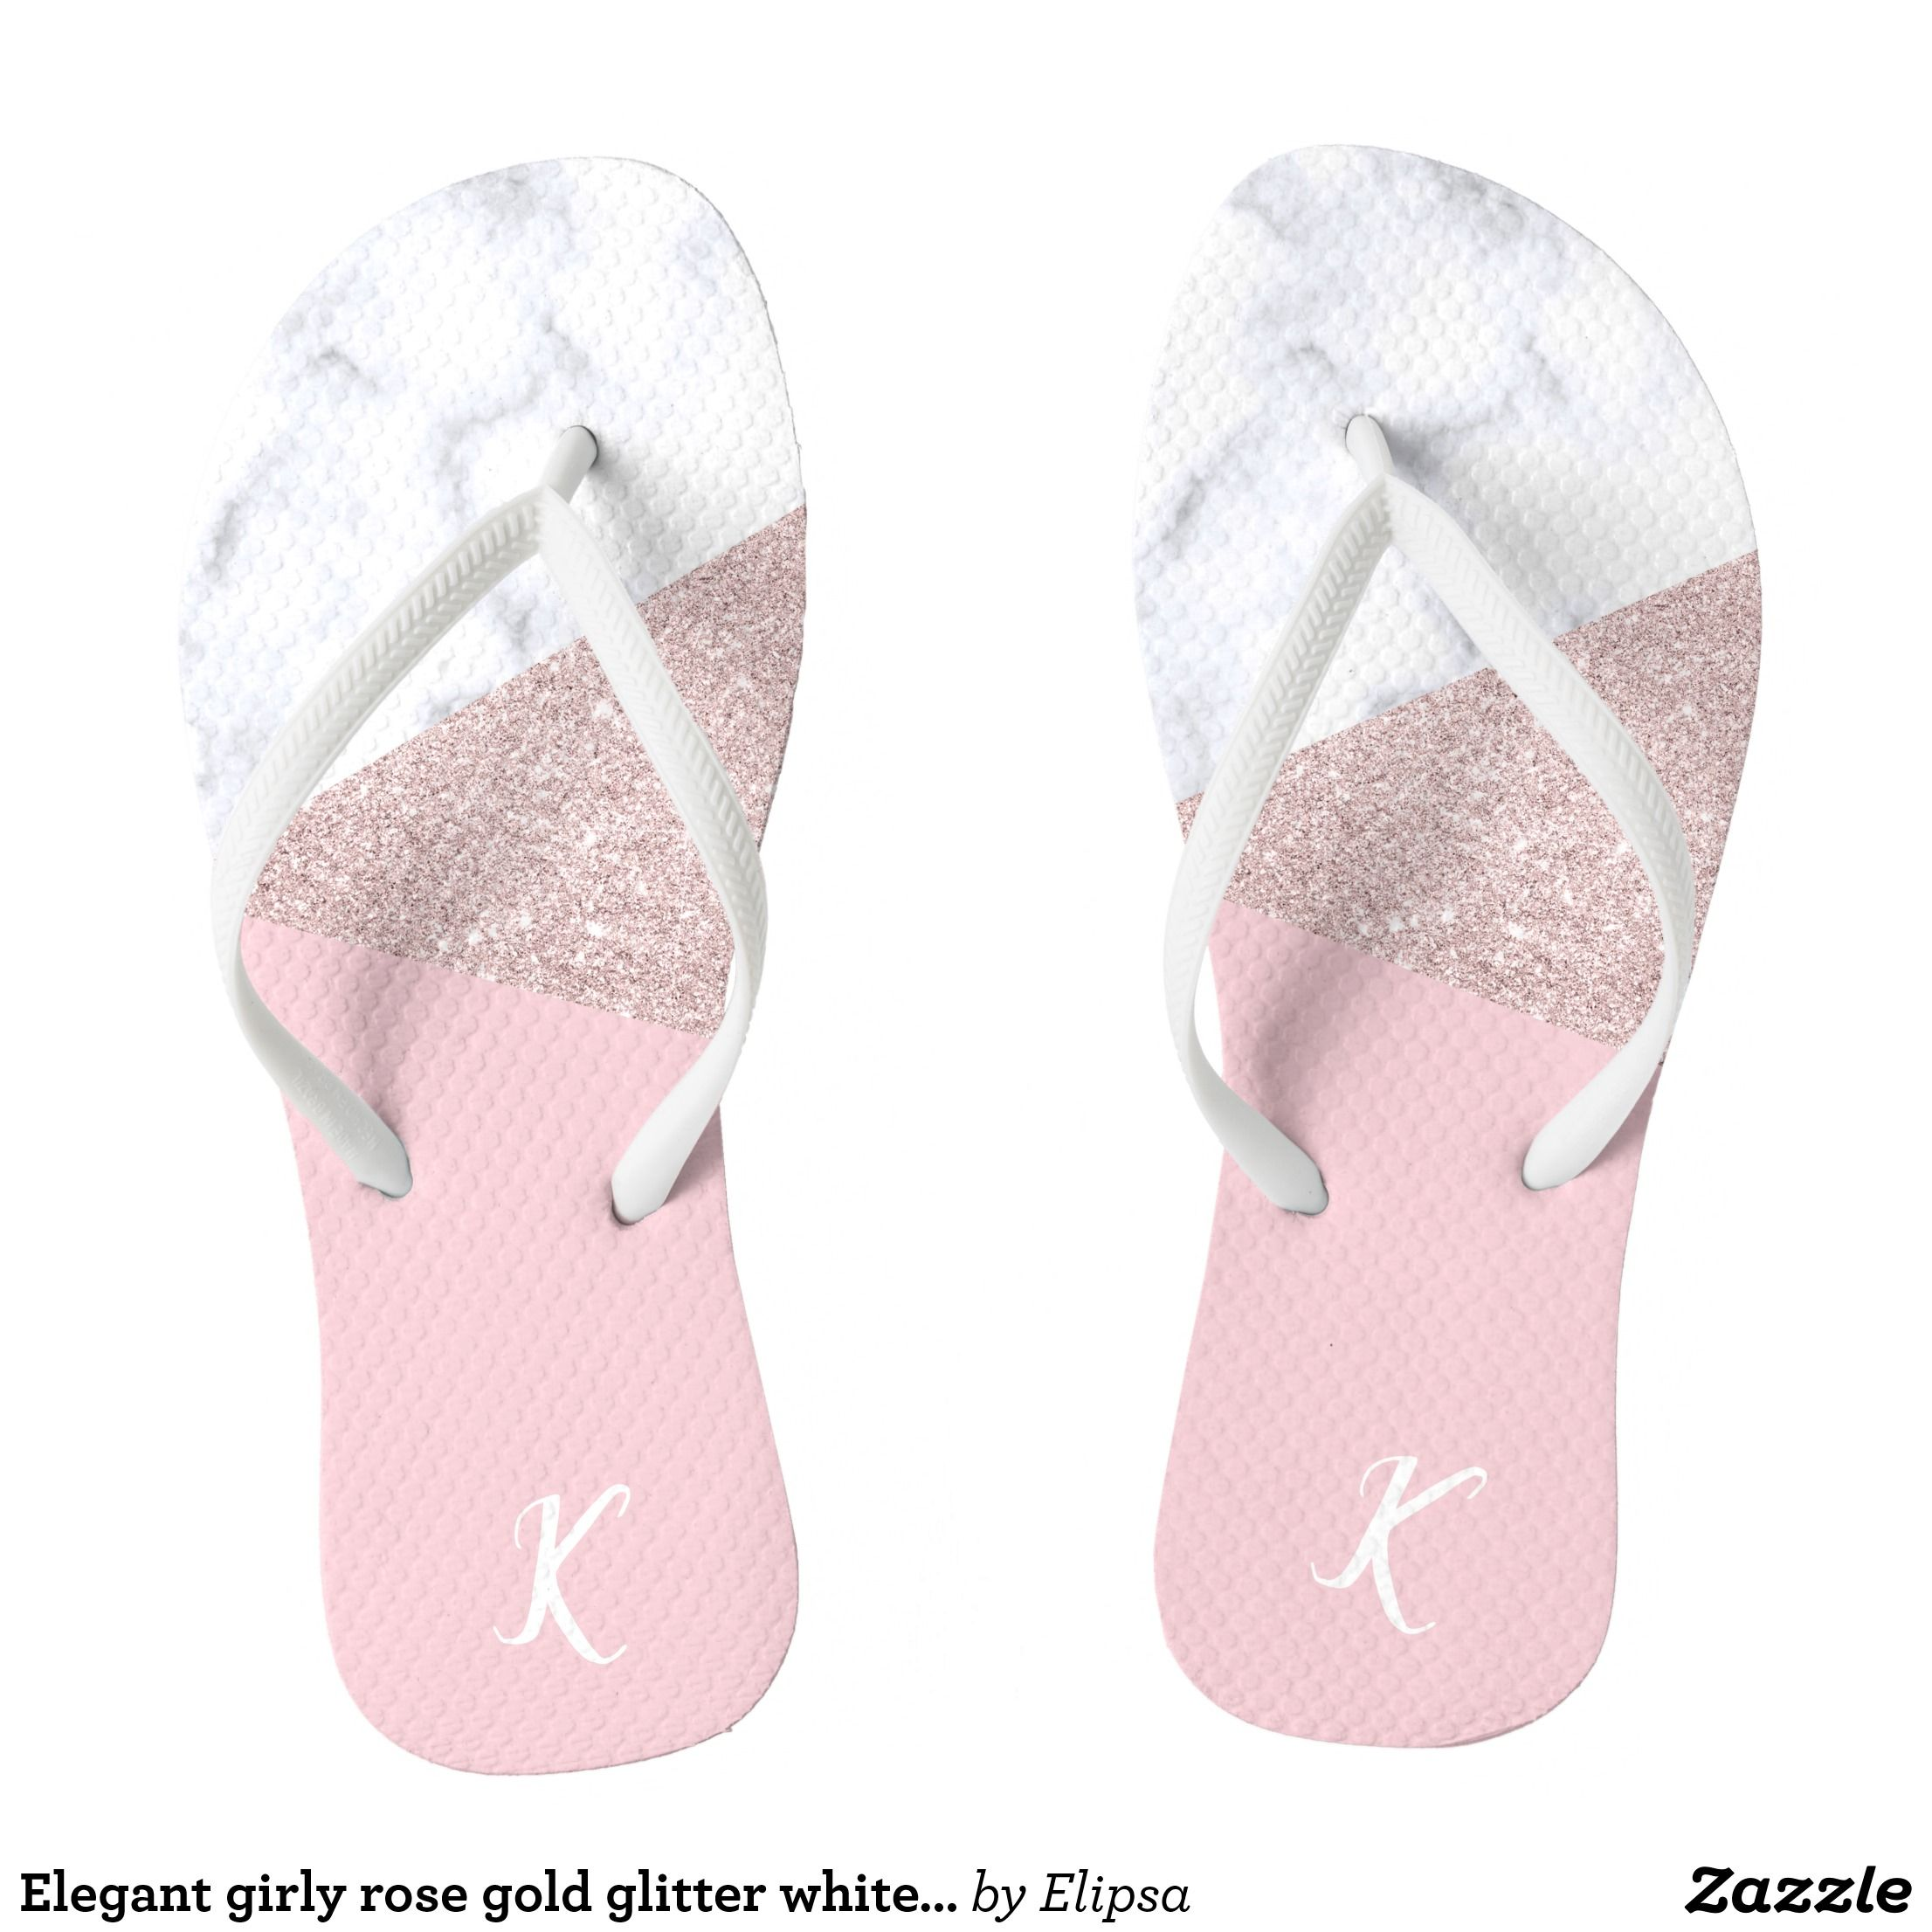 e37ecaf3f1612 Elegant girly rose gold glitter white marble pink flip flops - Durable  Thong Style Hawaiian Beach Sandals By Talented Fashion   Graphic Designers  -  sandals ...